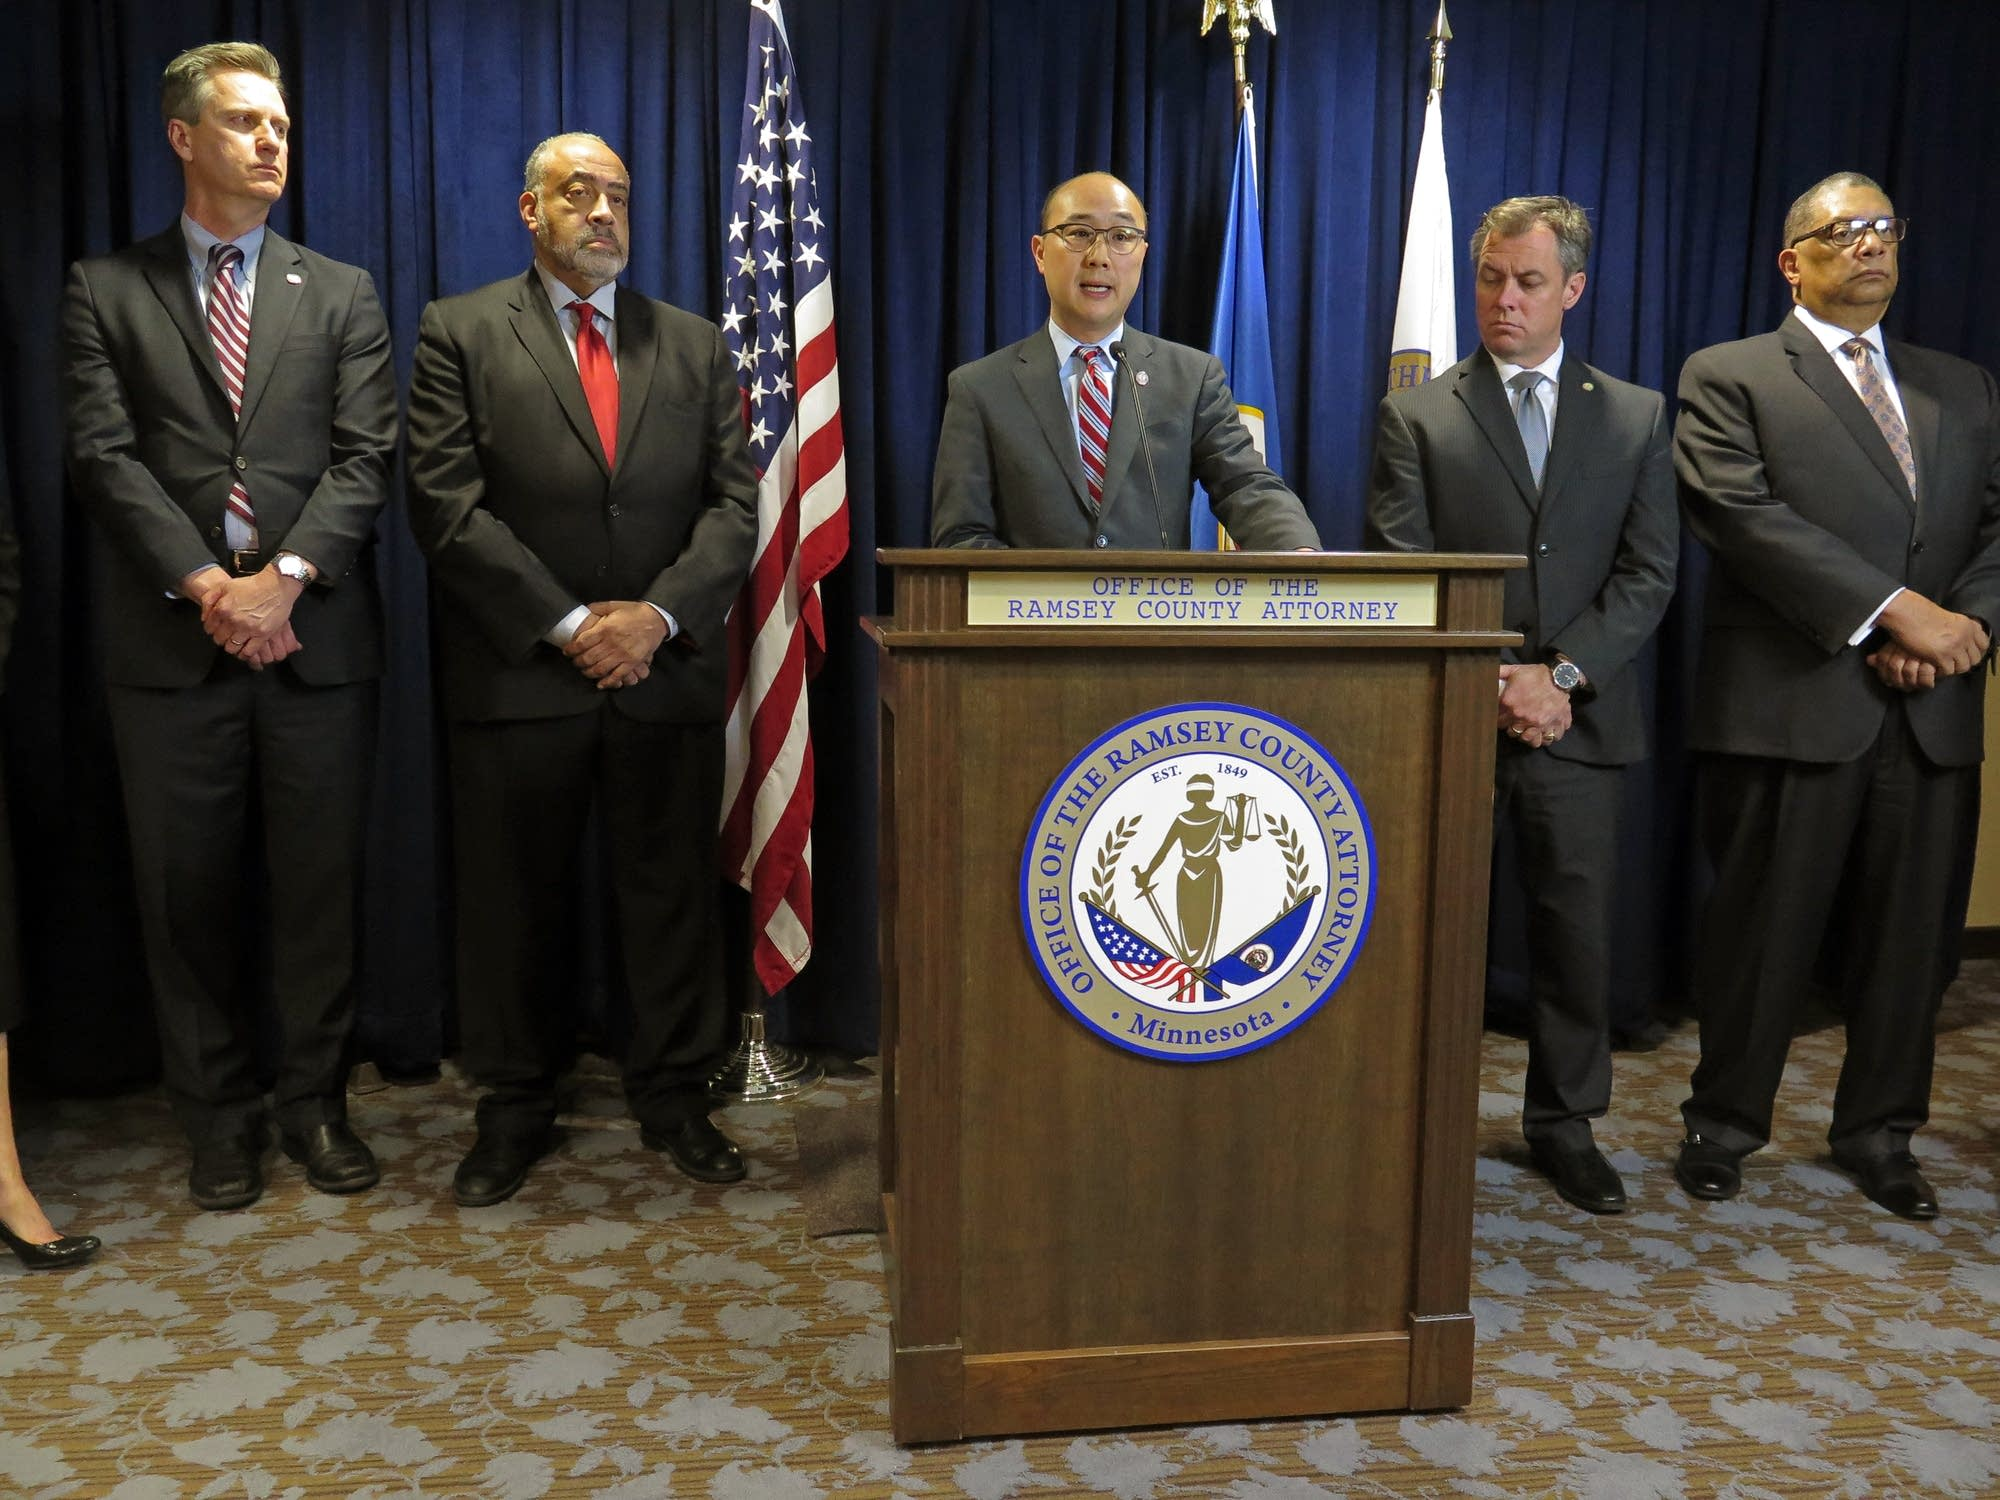 Ramsey County attorney John Choi and colleagues.